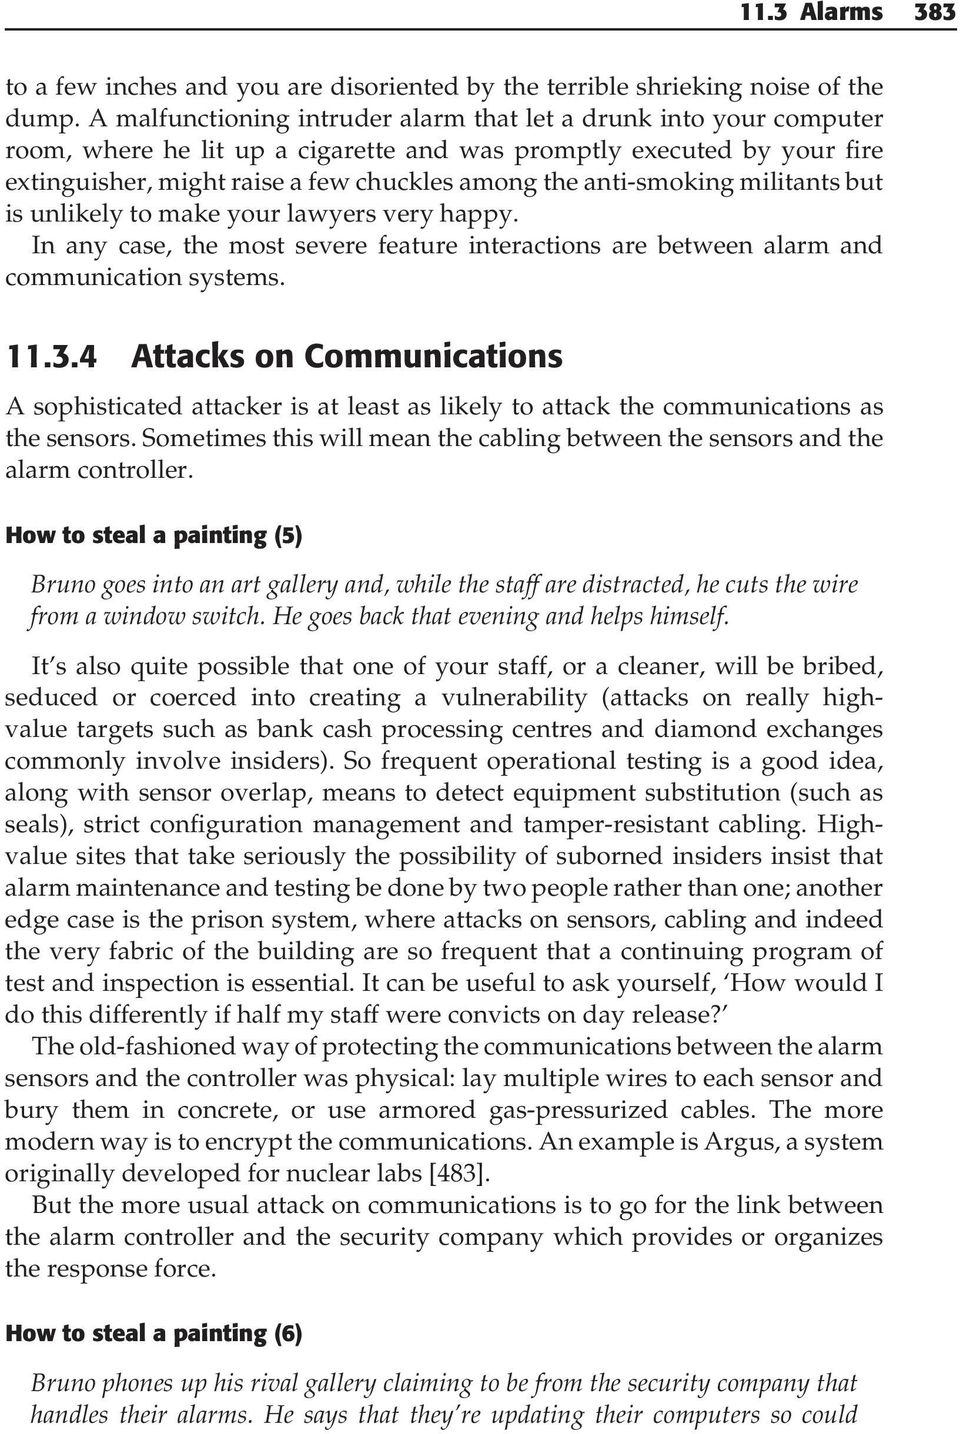 anti-smoking militants but is unlikely to make your lawyers very happy. In any case, the most severe feature interactions are between alarm and communication systems. 11.3.